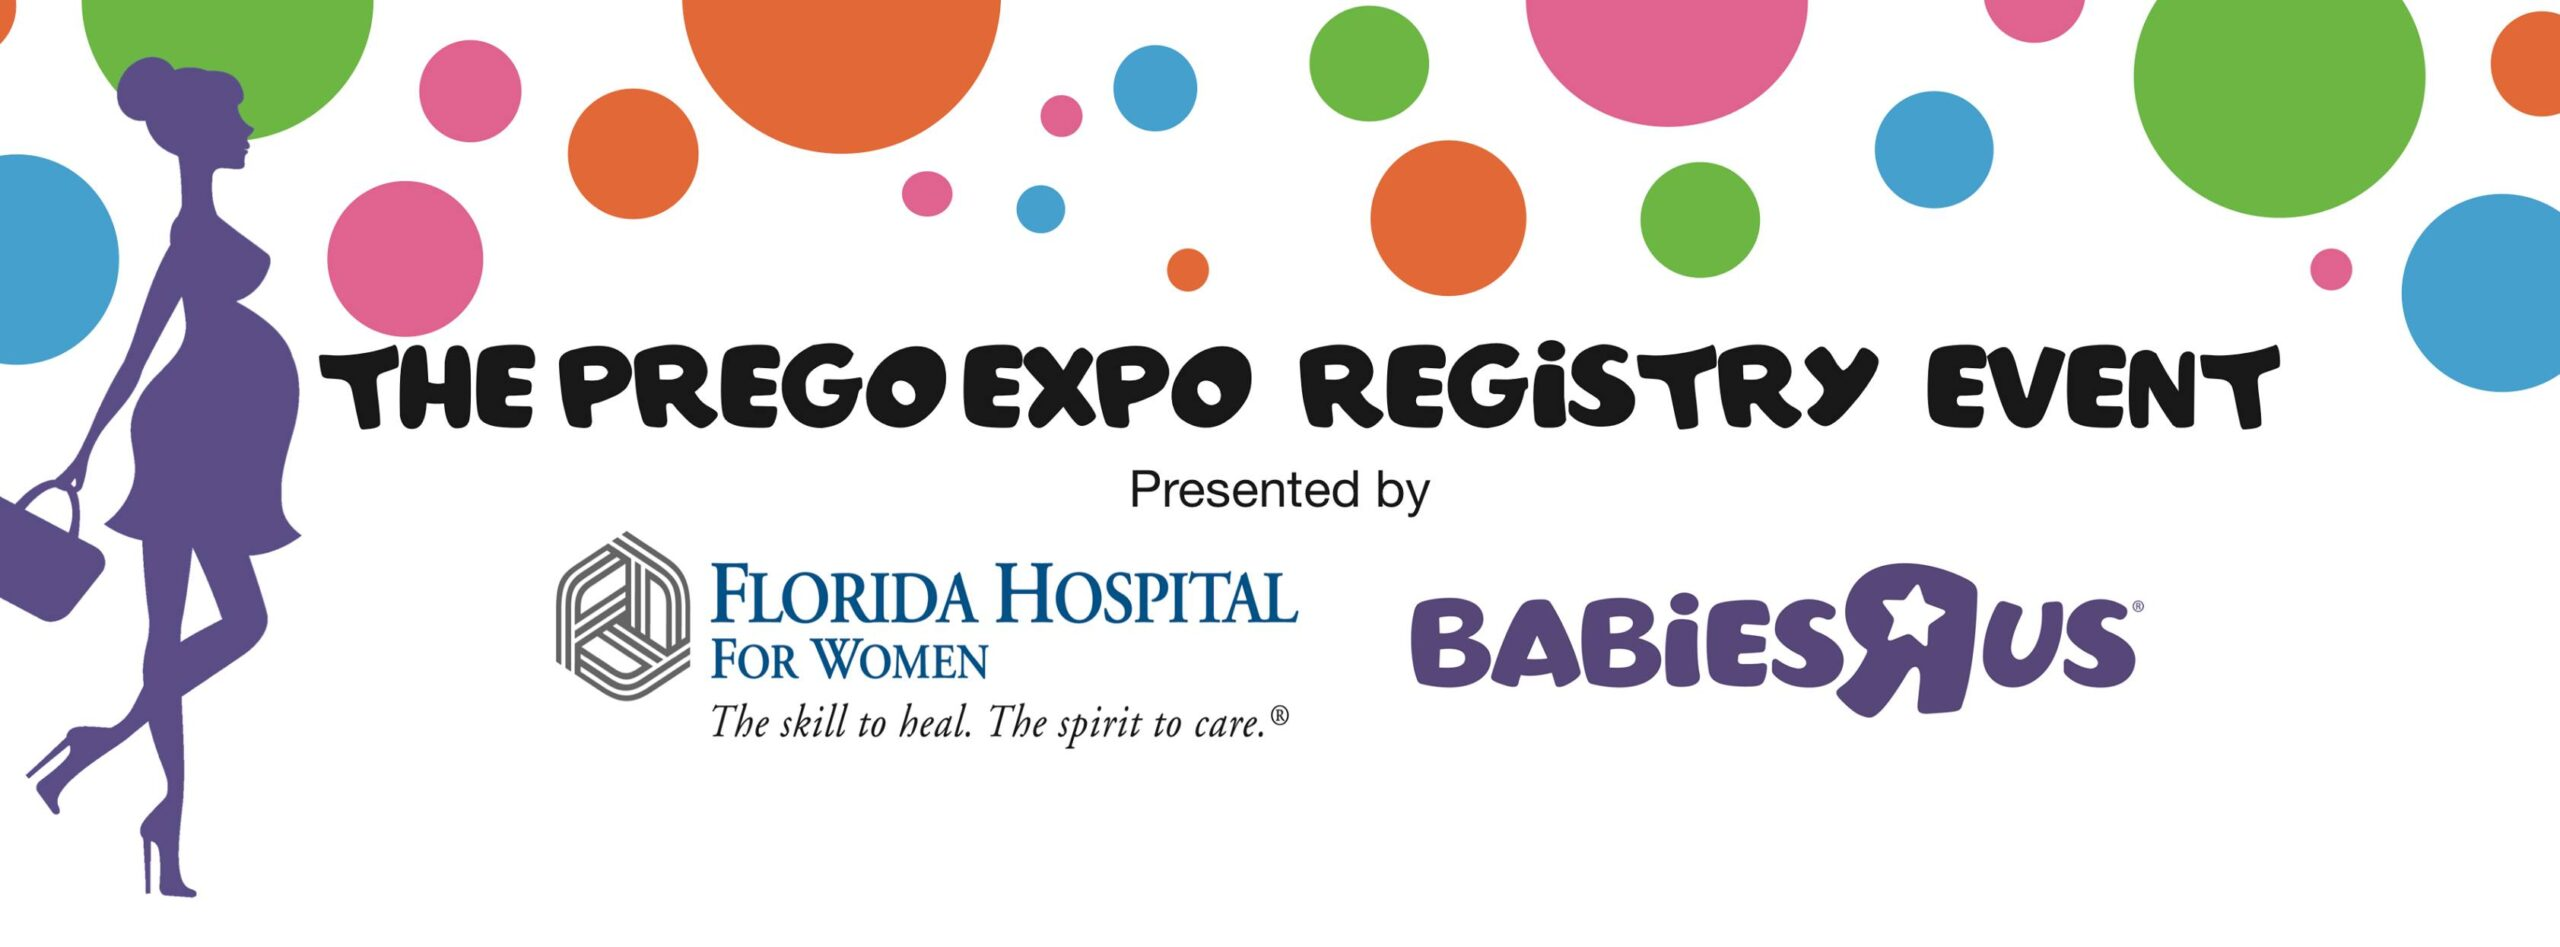 prego-expo-registry-event